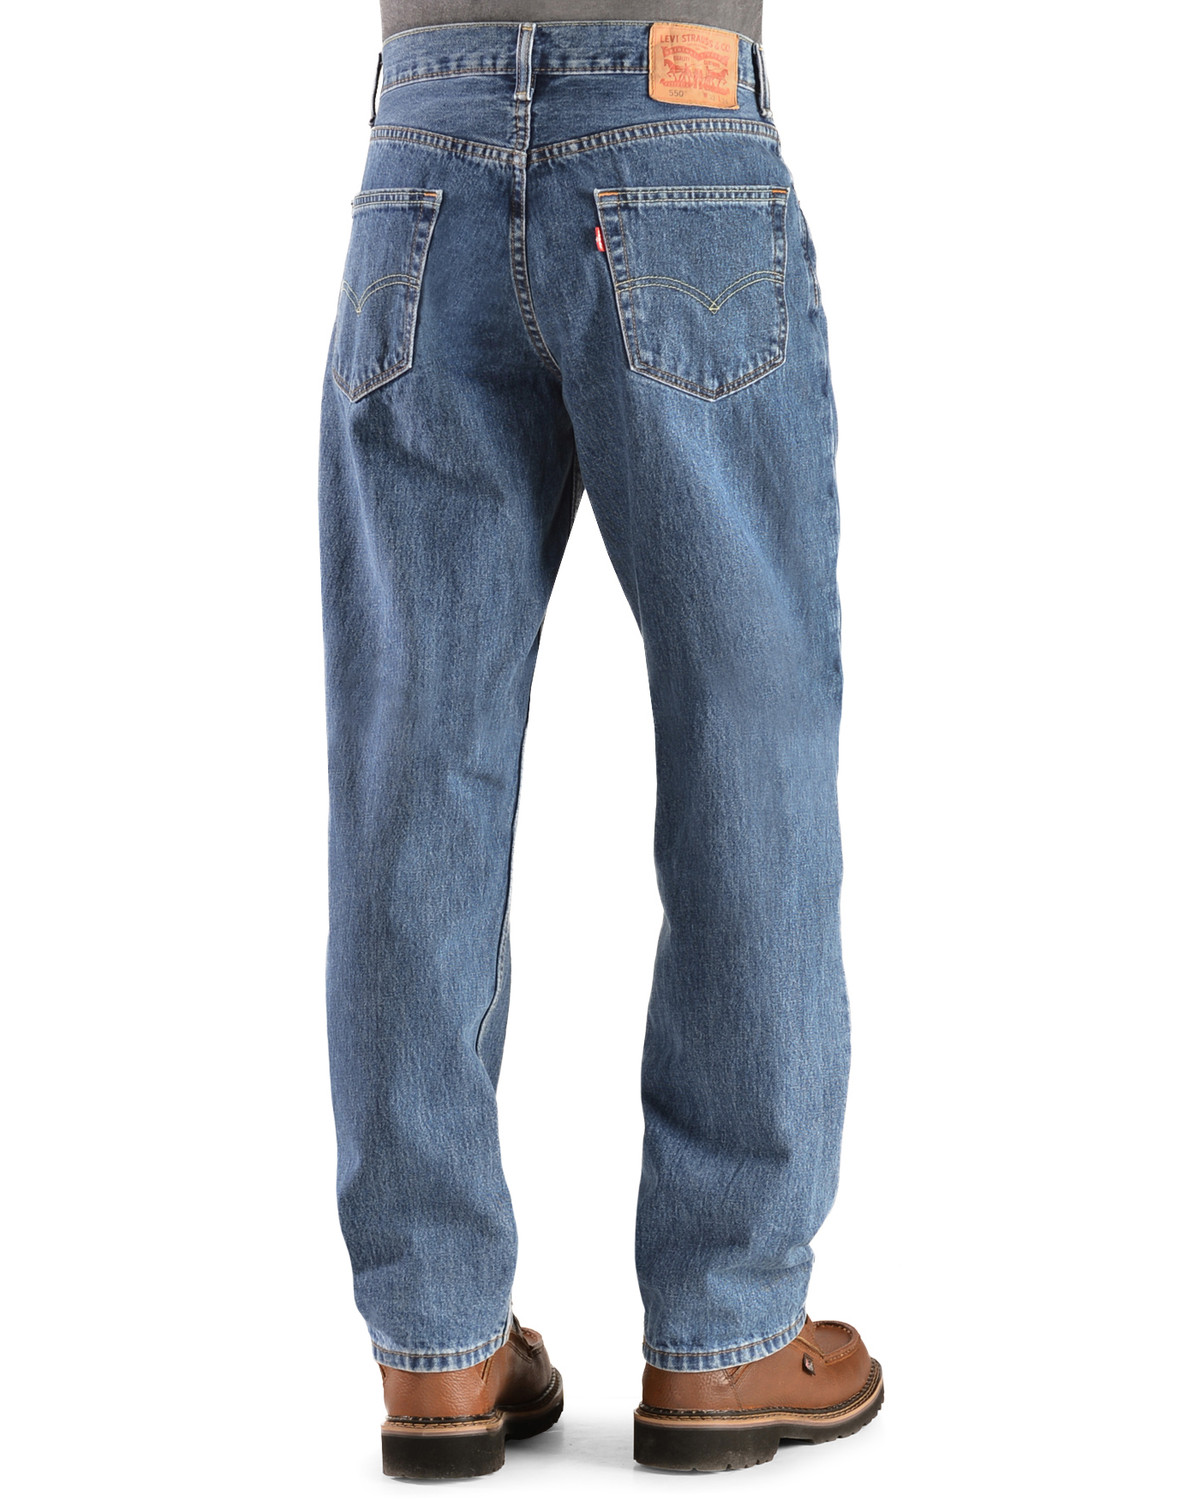 Find helpful customer reviews and review ratings for Levi's Men's Slim Bootcut Jean at lantoitramof.cf Read honest and unbiased product reviews from our users.